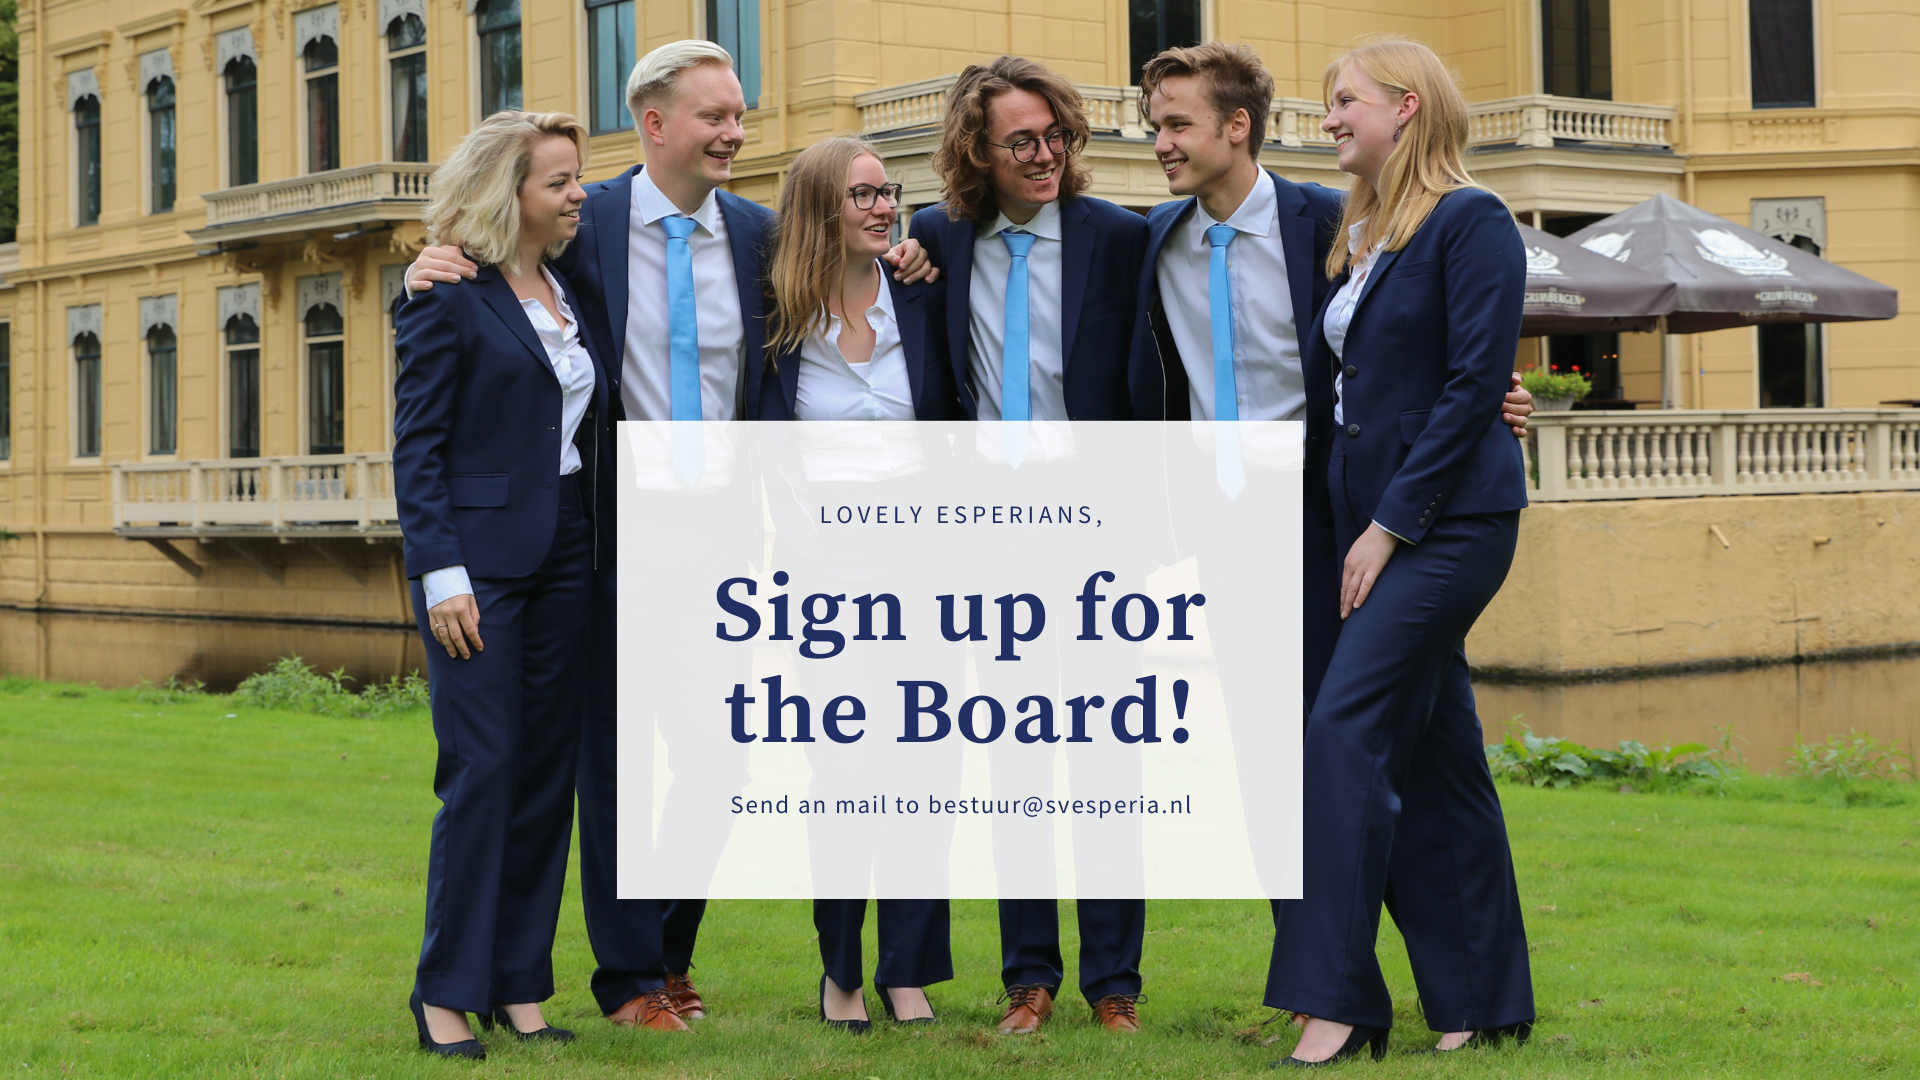 Apply for the Board!